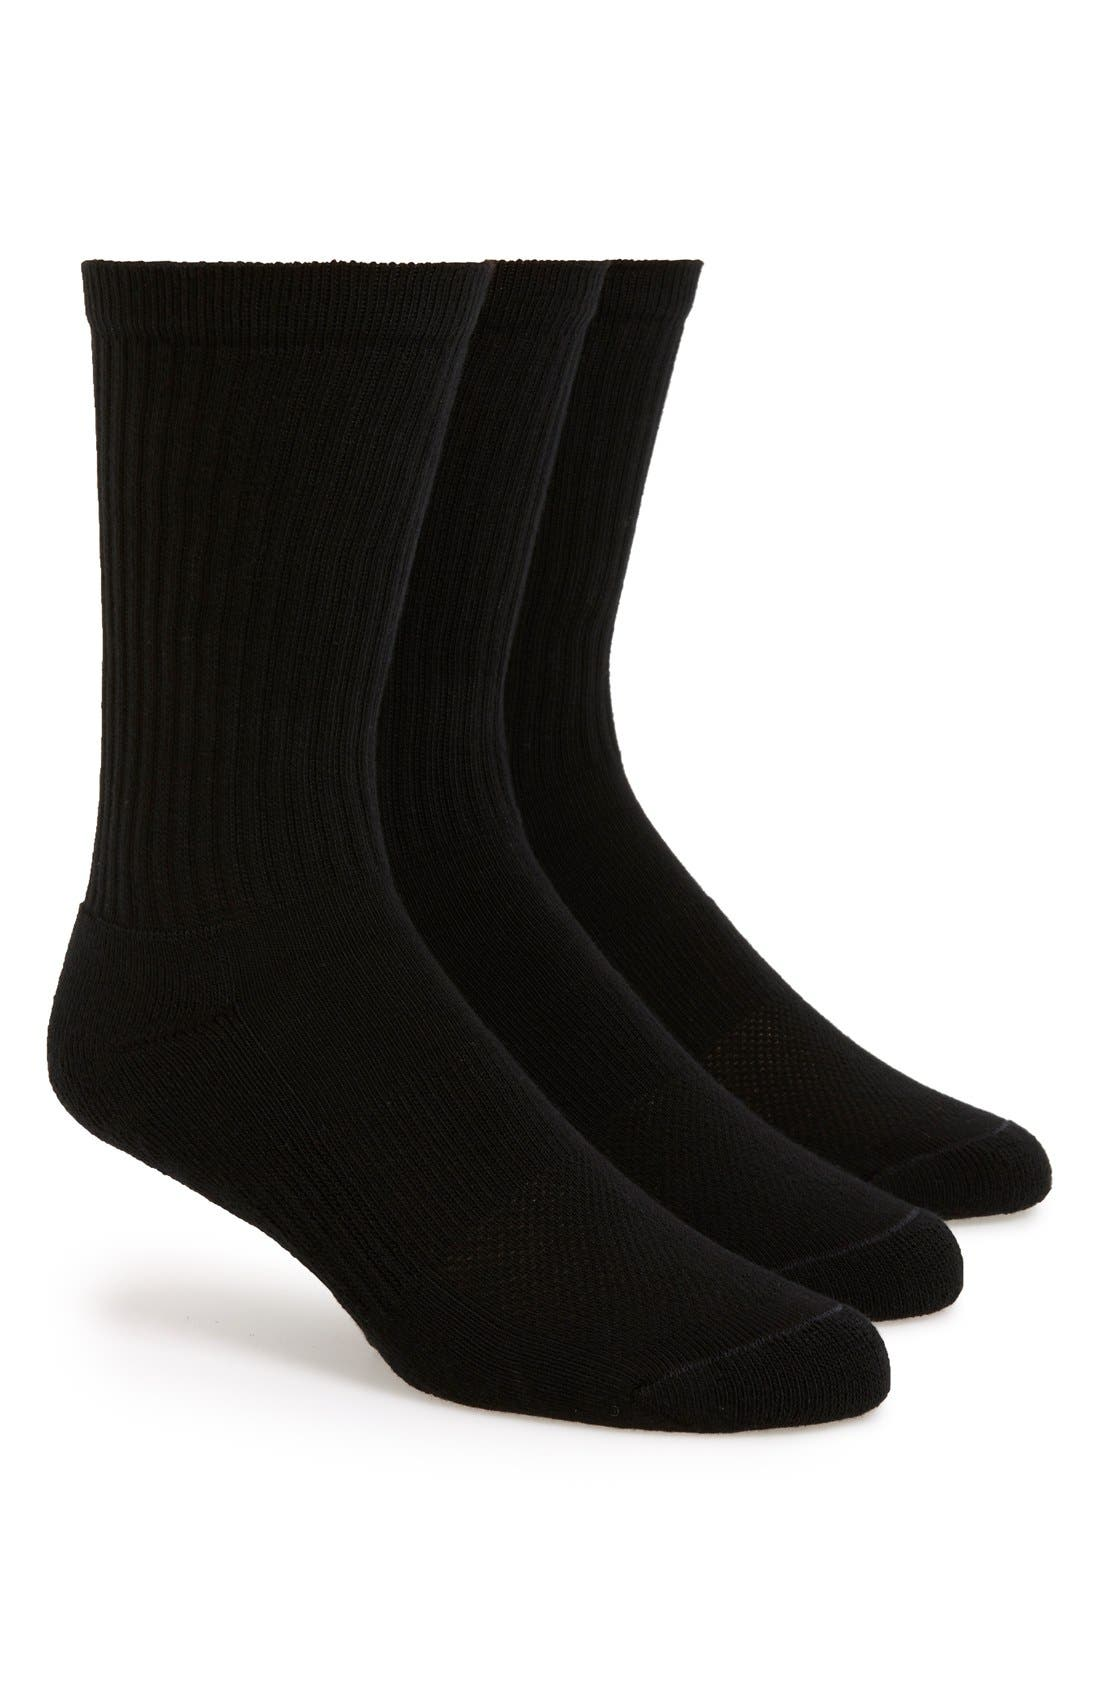 NORDSTROM MEN'S SHOP 3-Pack Crew Cut Athletic Socks